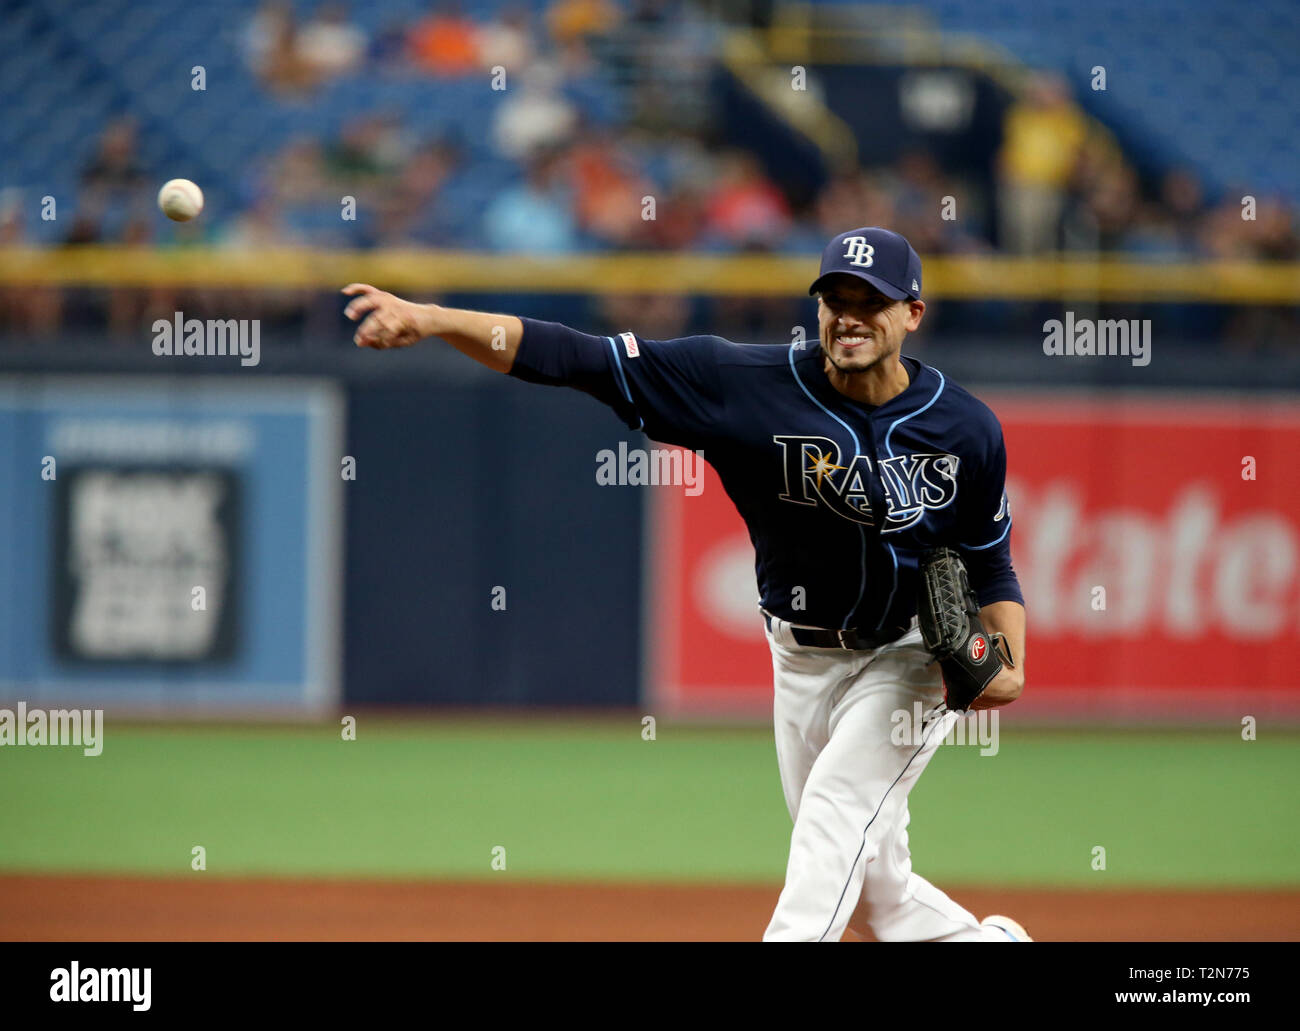 r a morton high resolution stock photography and images alamy https www alamy com st petersburg florida usa 3rd apr 2019 douglas r clifford times tampa bay rays starting pitcher charlie morton 50 delivers a pitch during the fifth inning of wednesdays 1319 game between the tampa bay rays and the colorado rockies at tropicana field in st petersburg credit douglas r cliffordtampa bay timeszuma wirealamy live news image242641145 html